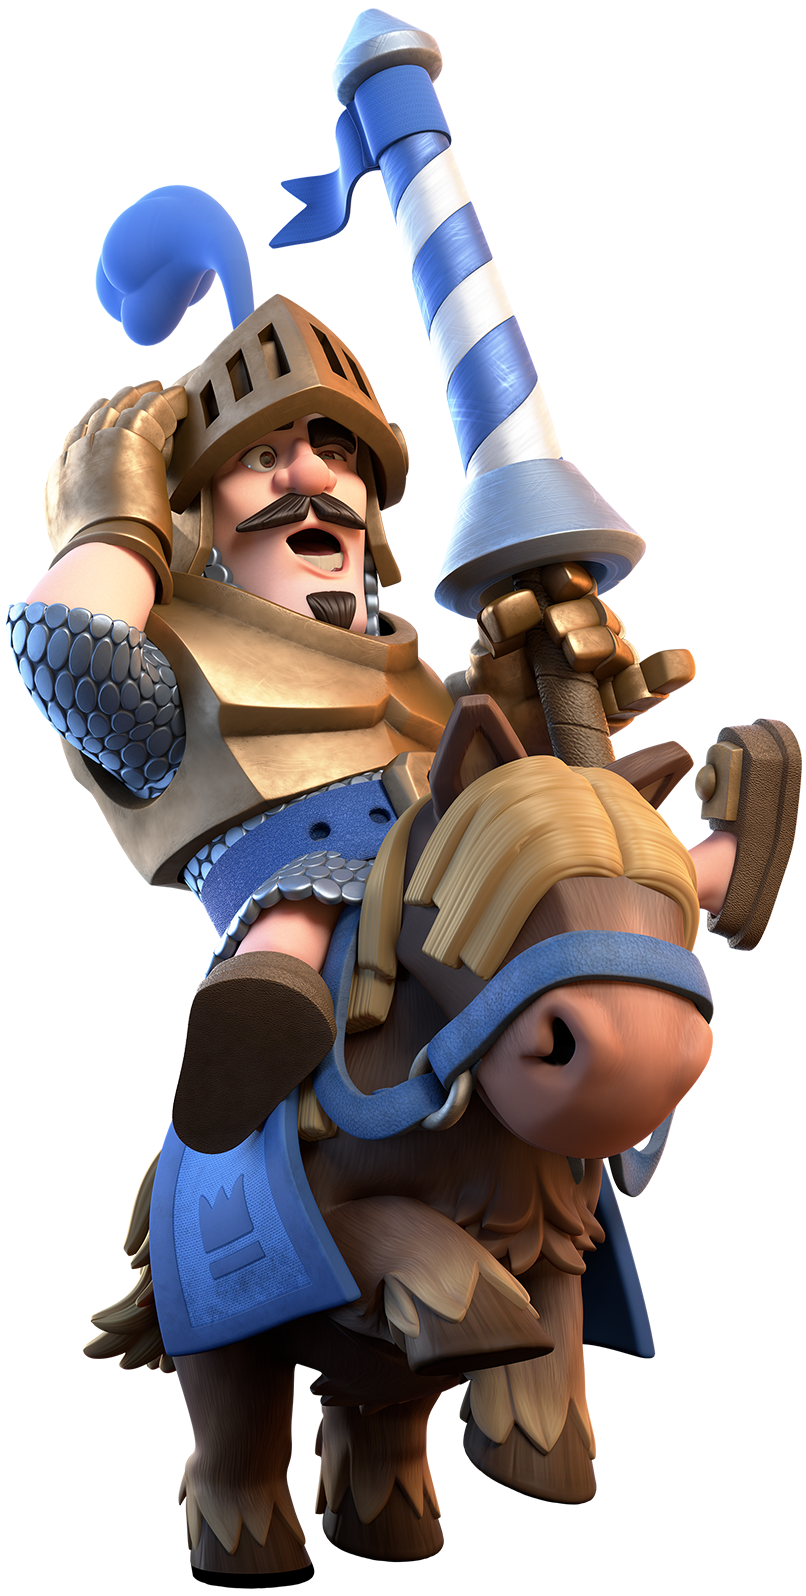 clash royale android picture HD HQ Wallpaper